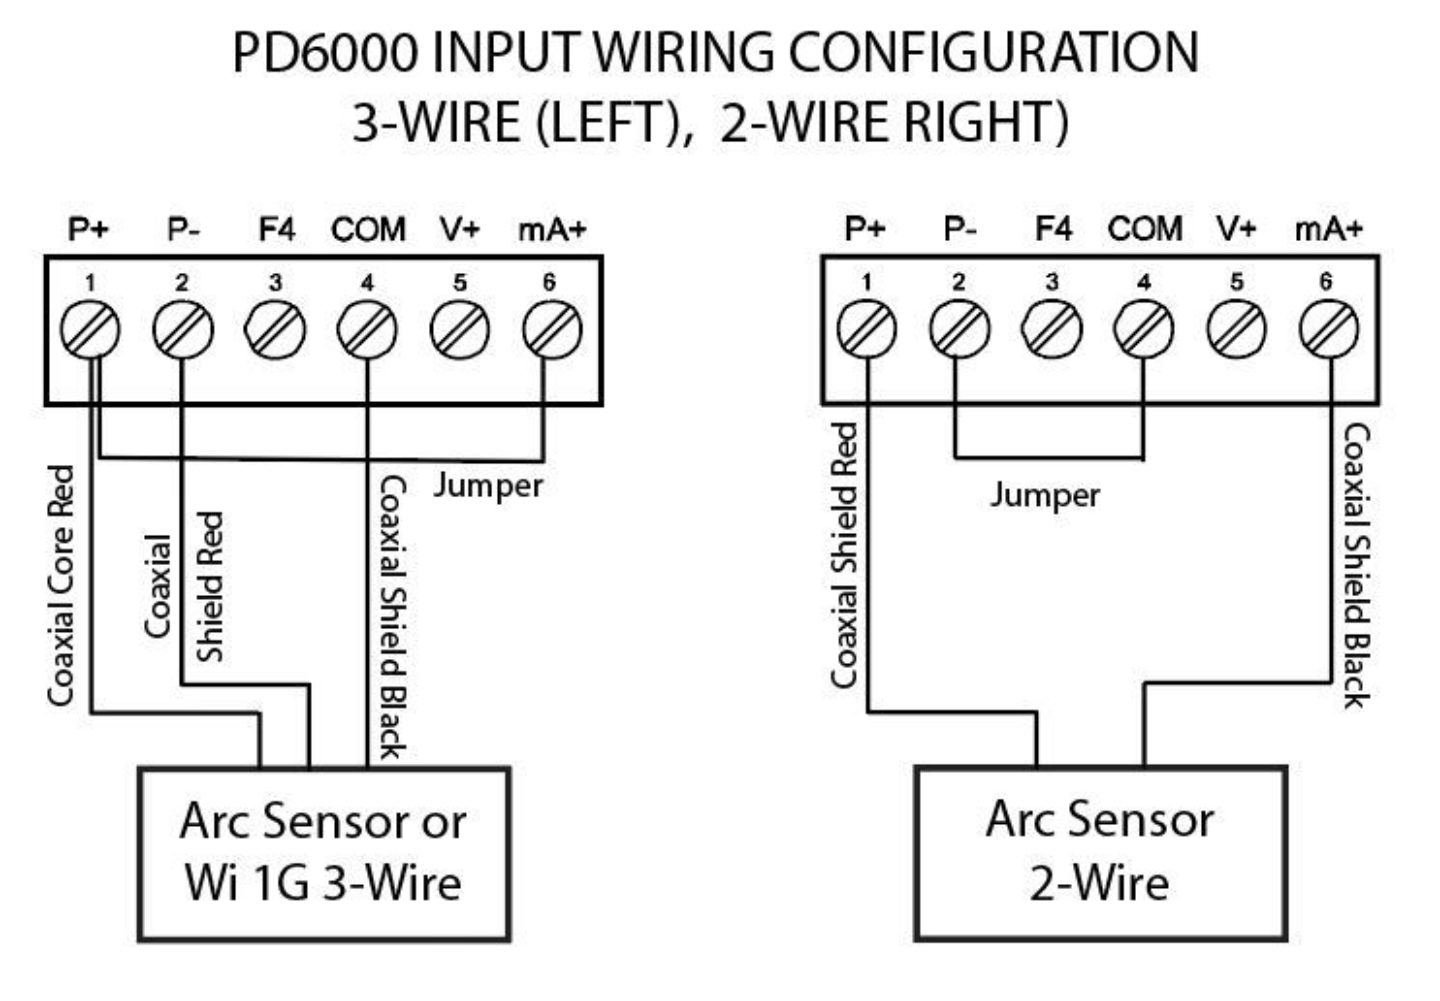 small resolution of 3 wire sensor wiring is required for visiferm products as well as the addition of the wi 1g bluetooth adapter ref 243460 to any sensor